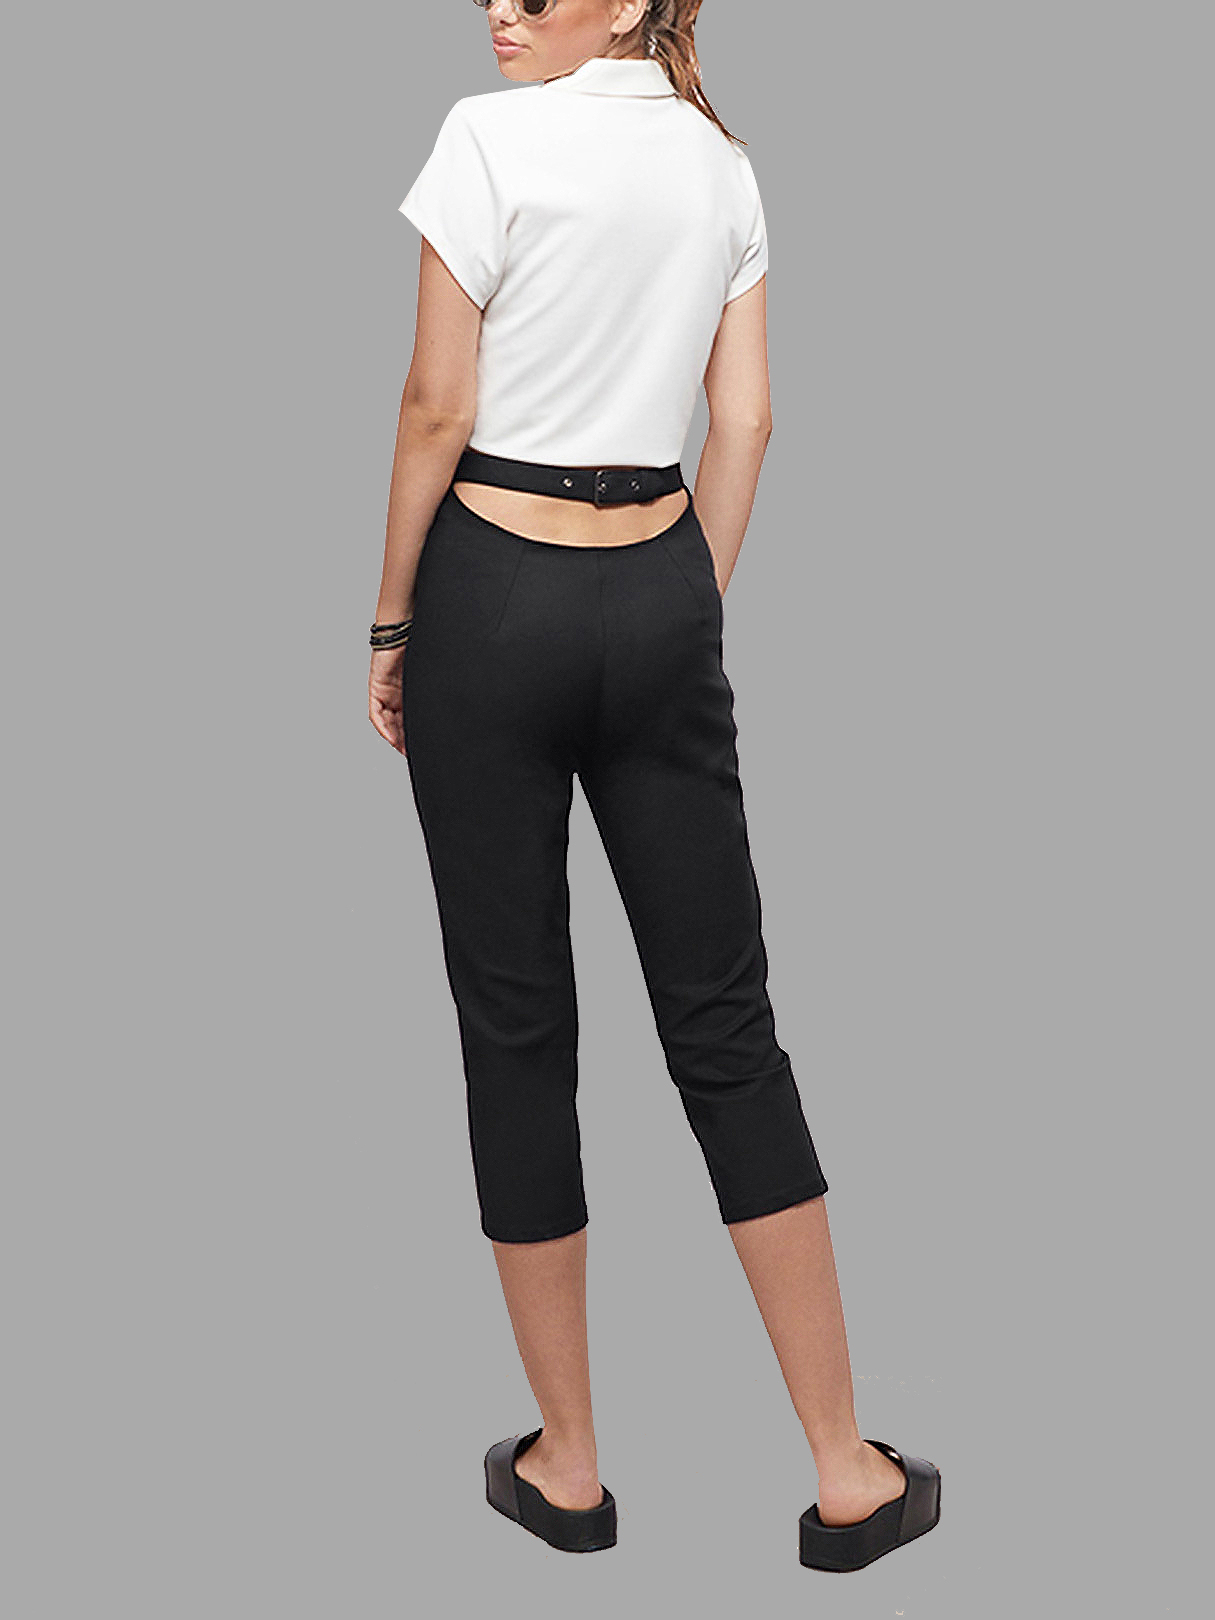 Black High Waist Cut-out Cropped Trousers the white guard